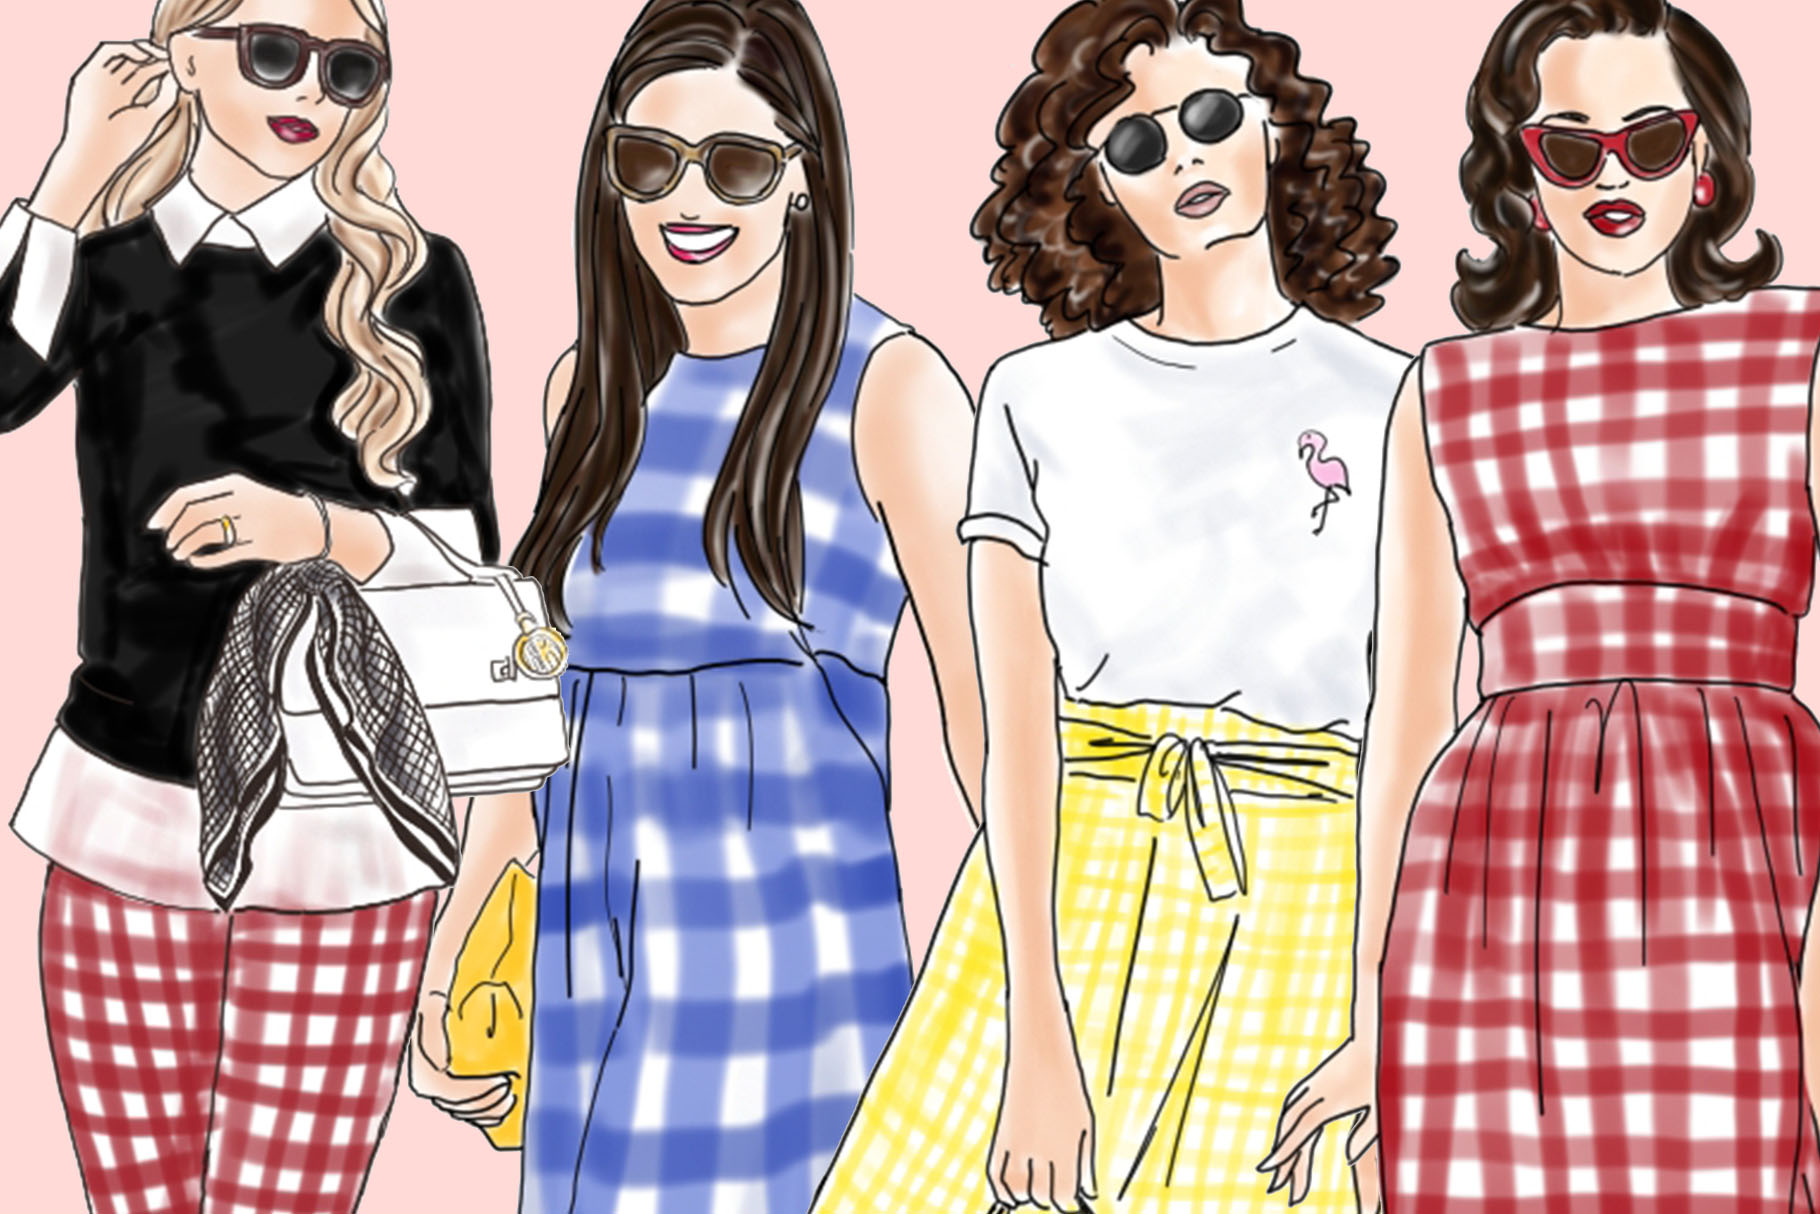 Fashion illustration clipart - Girls in Gingham - Light Skin example image 3